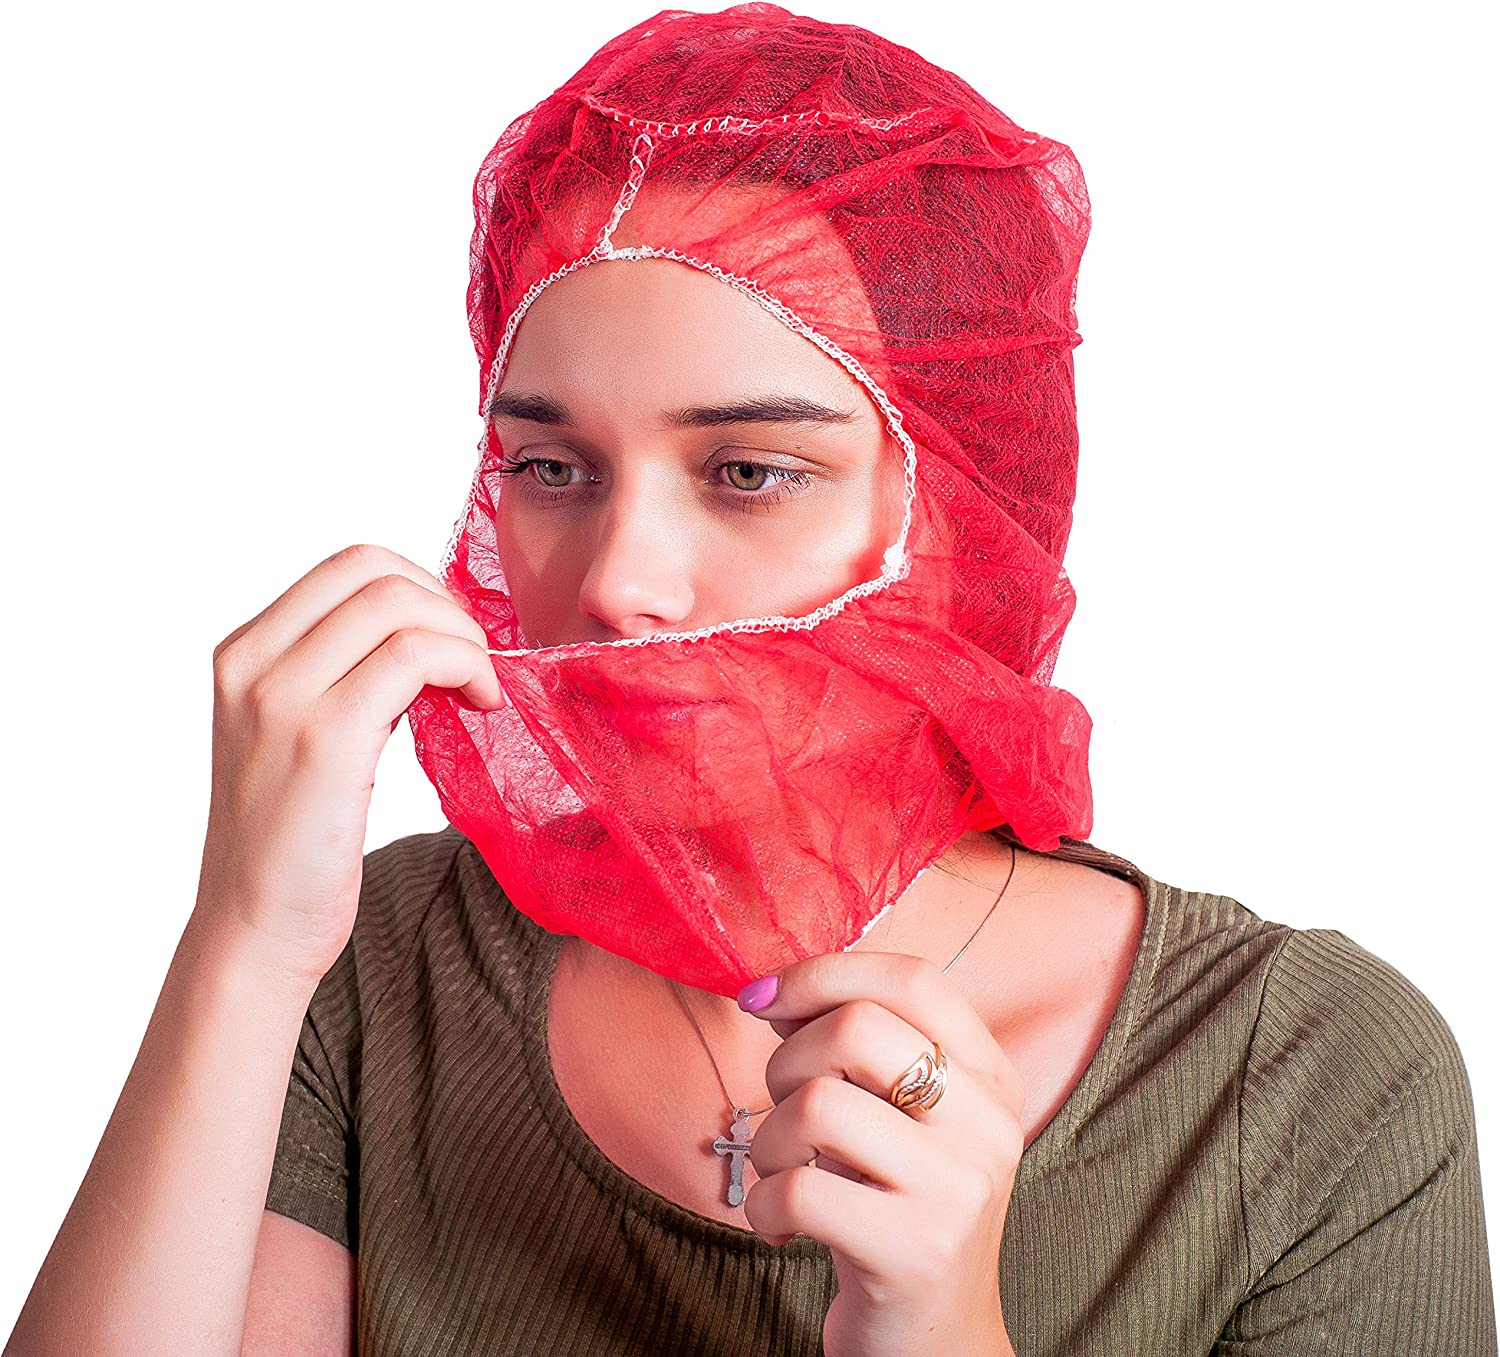 100 Pack Polypropylene Hooded Caps. Red Non Woven Hoods with Elastic Closure. Disposable Hoods. Unisex Hair Covers for Food Service, Industrial Use. Breathable, Lightweight. One Size.